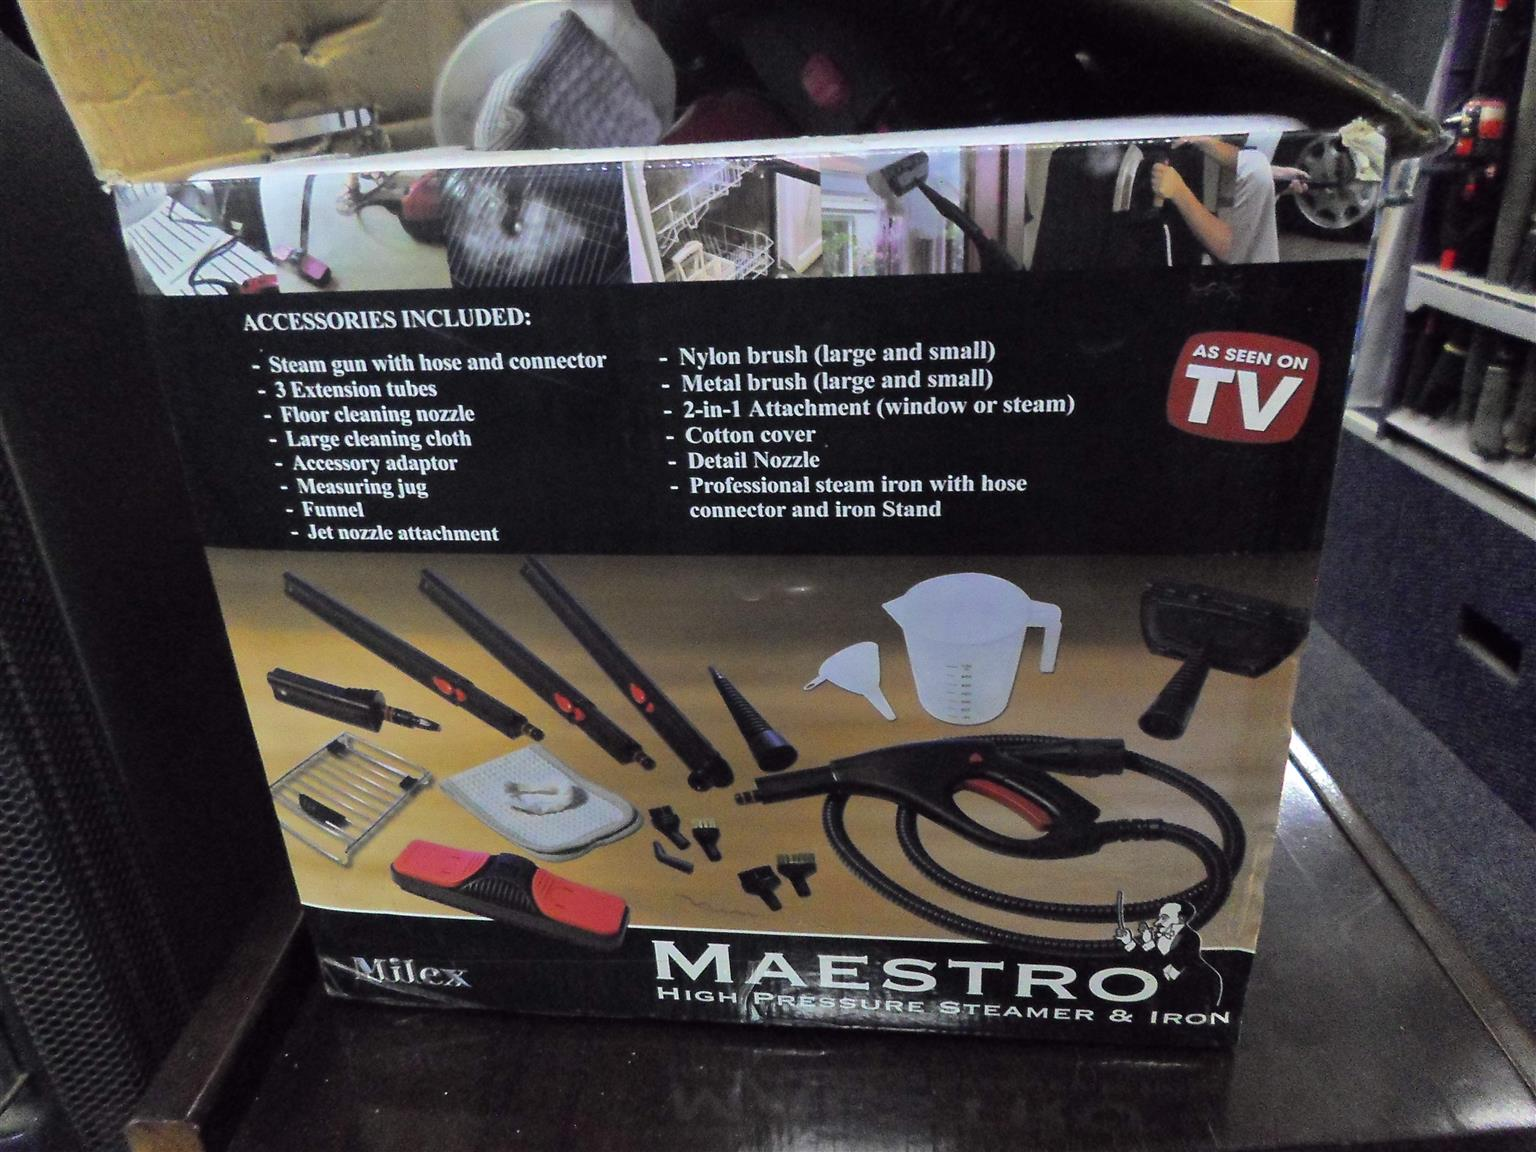 Maestro Steam Cleaner and Iron